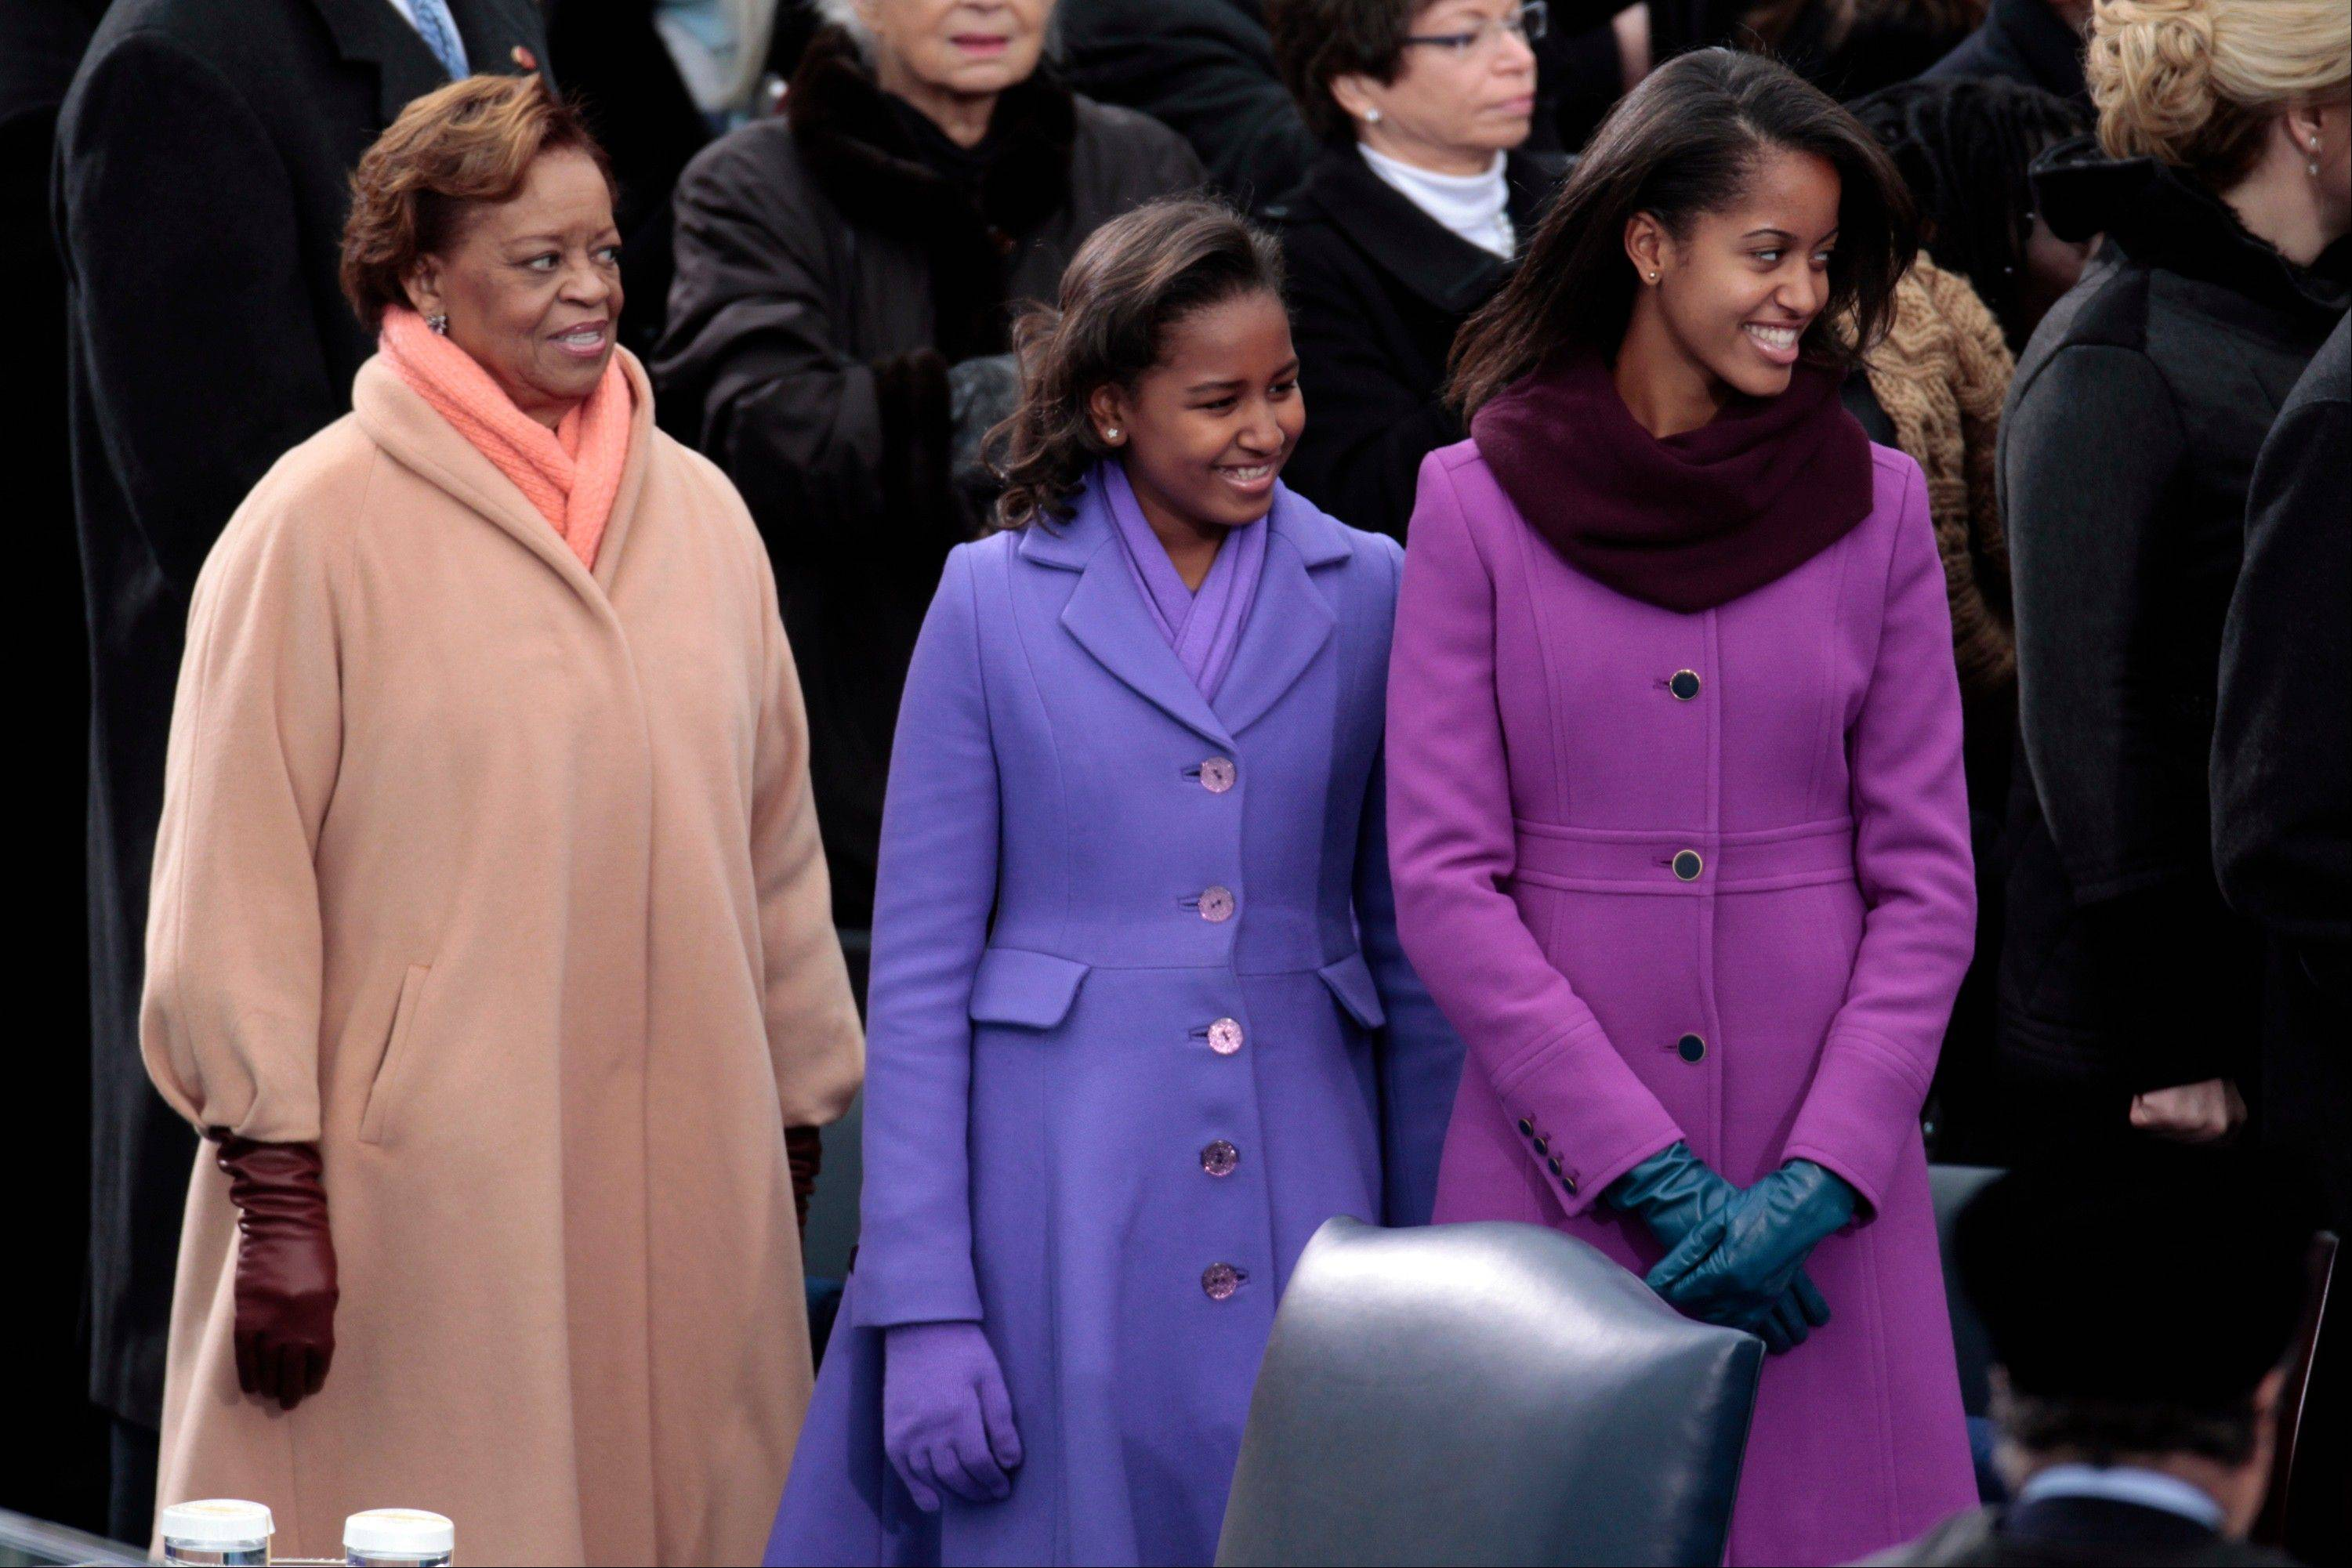 Marian Robinson, mother of first lady Michelle Obama, left, stands with her granddaughters Sasha Obama, center, and Malia Obama during the U.S. presidential inauguration at the Capitol in Washington, D.C., U.S., on Monday, Jan. 21, 2013. As he enters his second term President Barack Obama has shed the aura of a hopeful consensus builder determined to break partisan gridlock and adopted a more confrontational stance with Republicans.